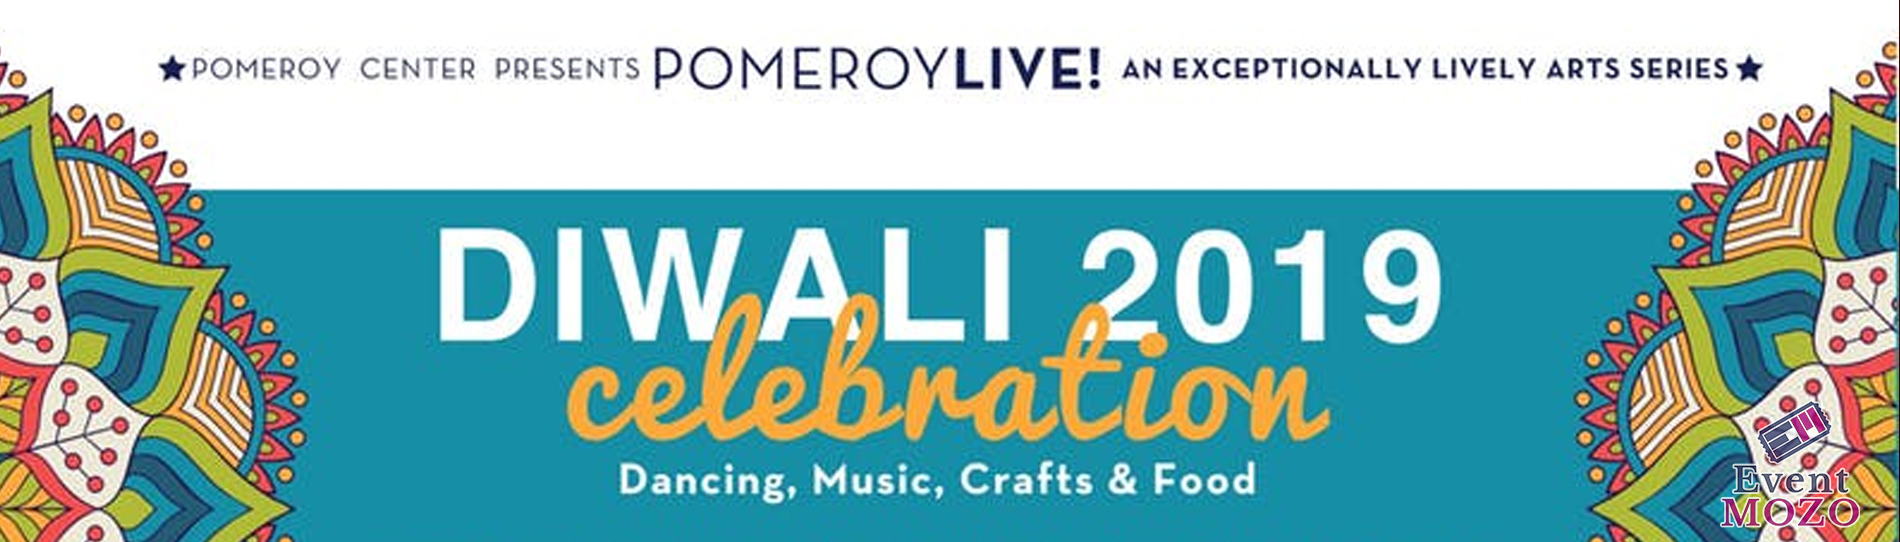 EventMozo Pomeroy LIVE Diwali 2019 Celebration